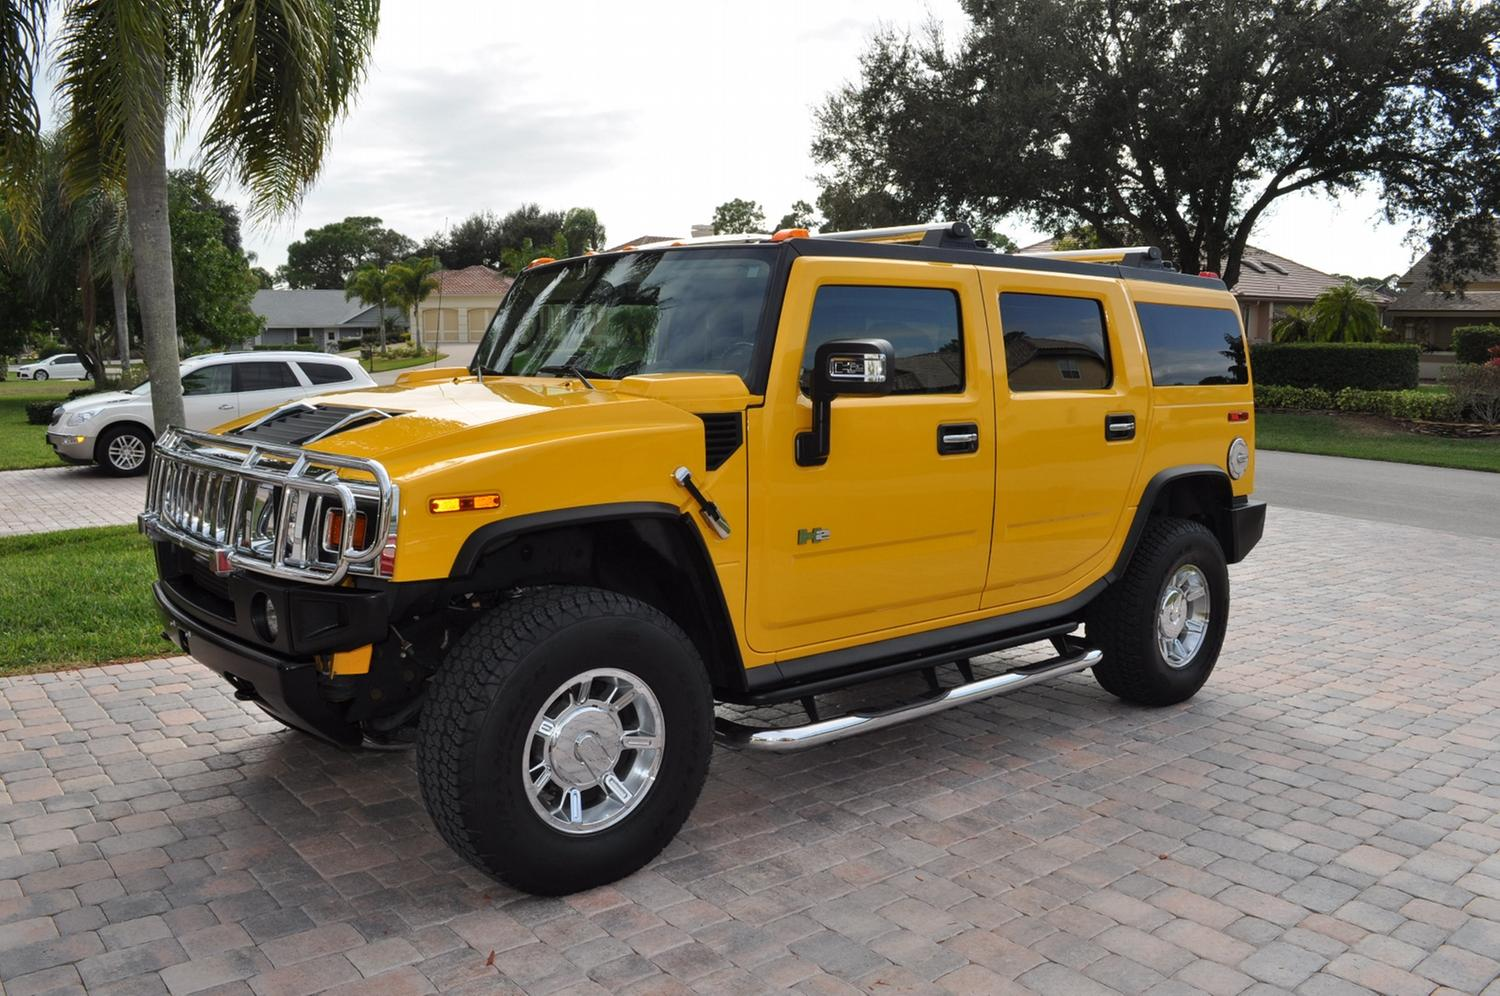 2007 hummer h2 luxury suv image 1 2007 hummer h2 luxury suv vanachro Image collections